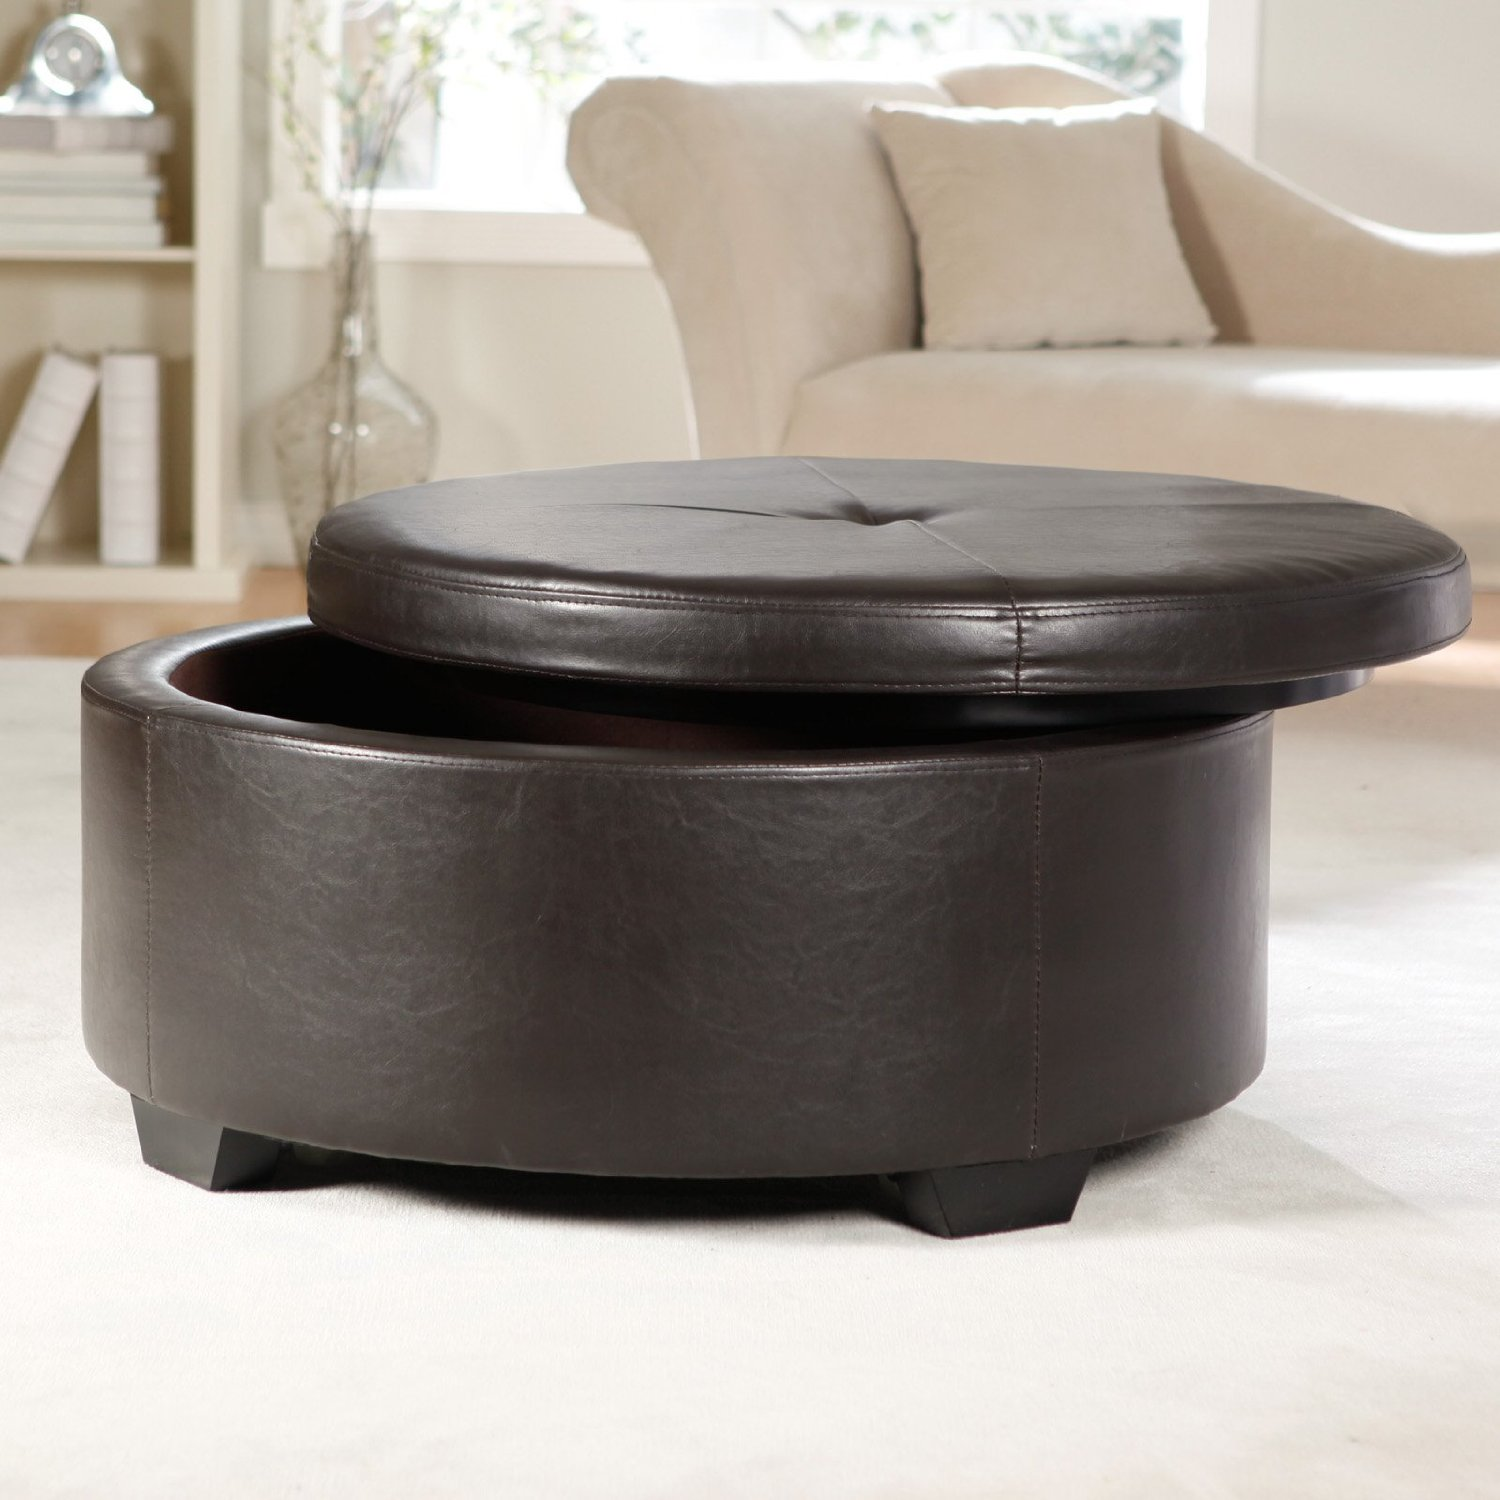 Furniture Round Ottoman Coffee Table Ideal Round Ottoman Coffee Table (Image 4 of 8)